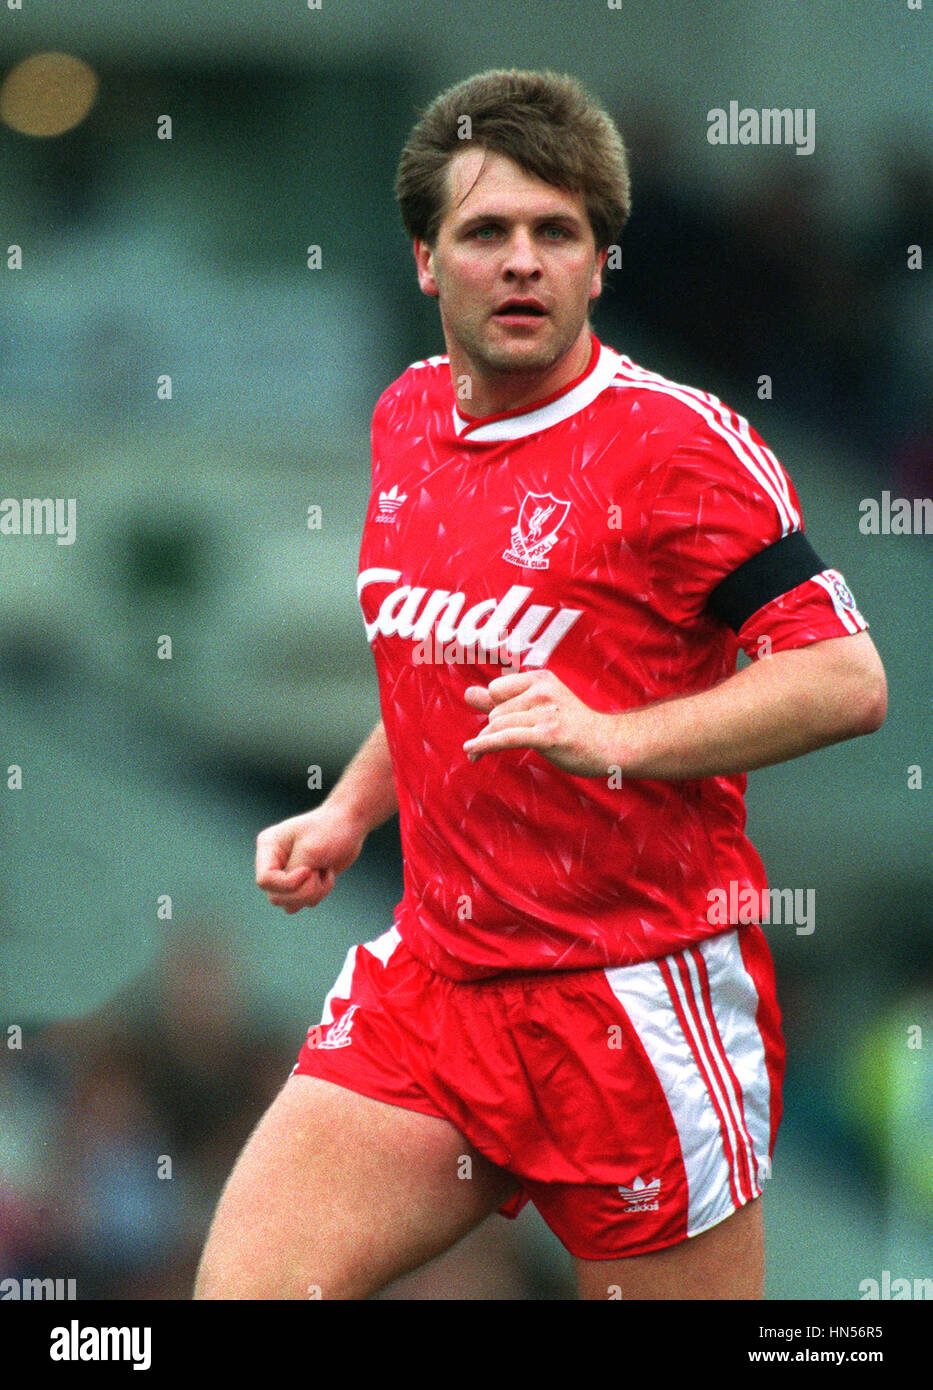 [img]https://c8.alamy.com/comp/HN56R5/jan-molby-liverpool-fc-16-april-1991-HN56R5.jpg[/img]